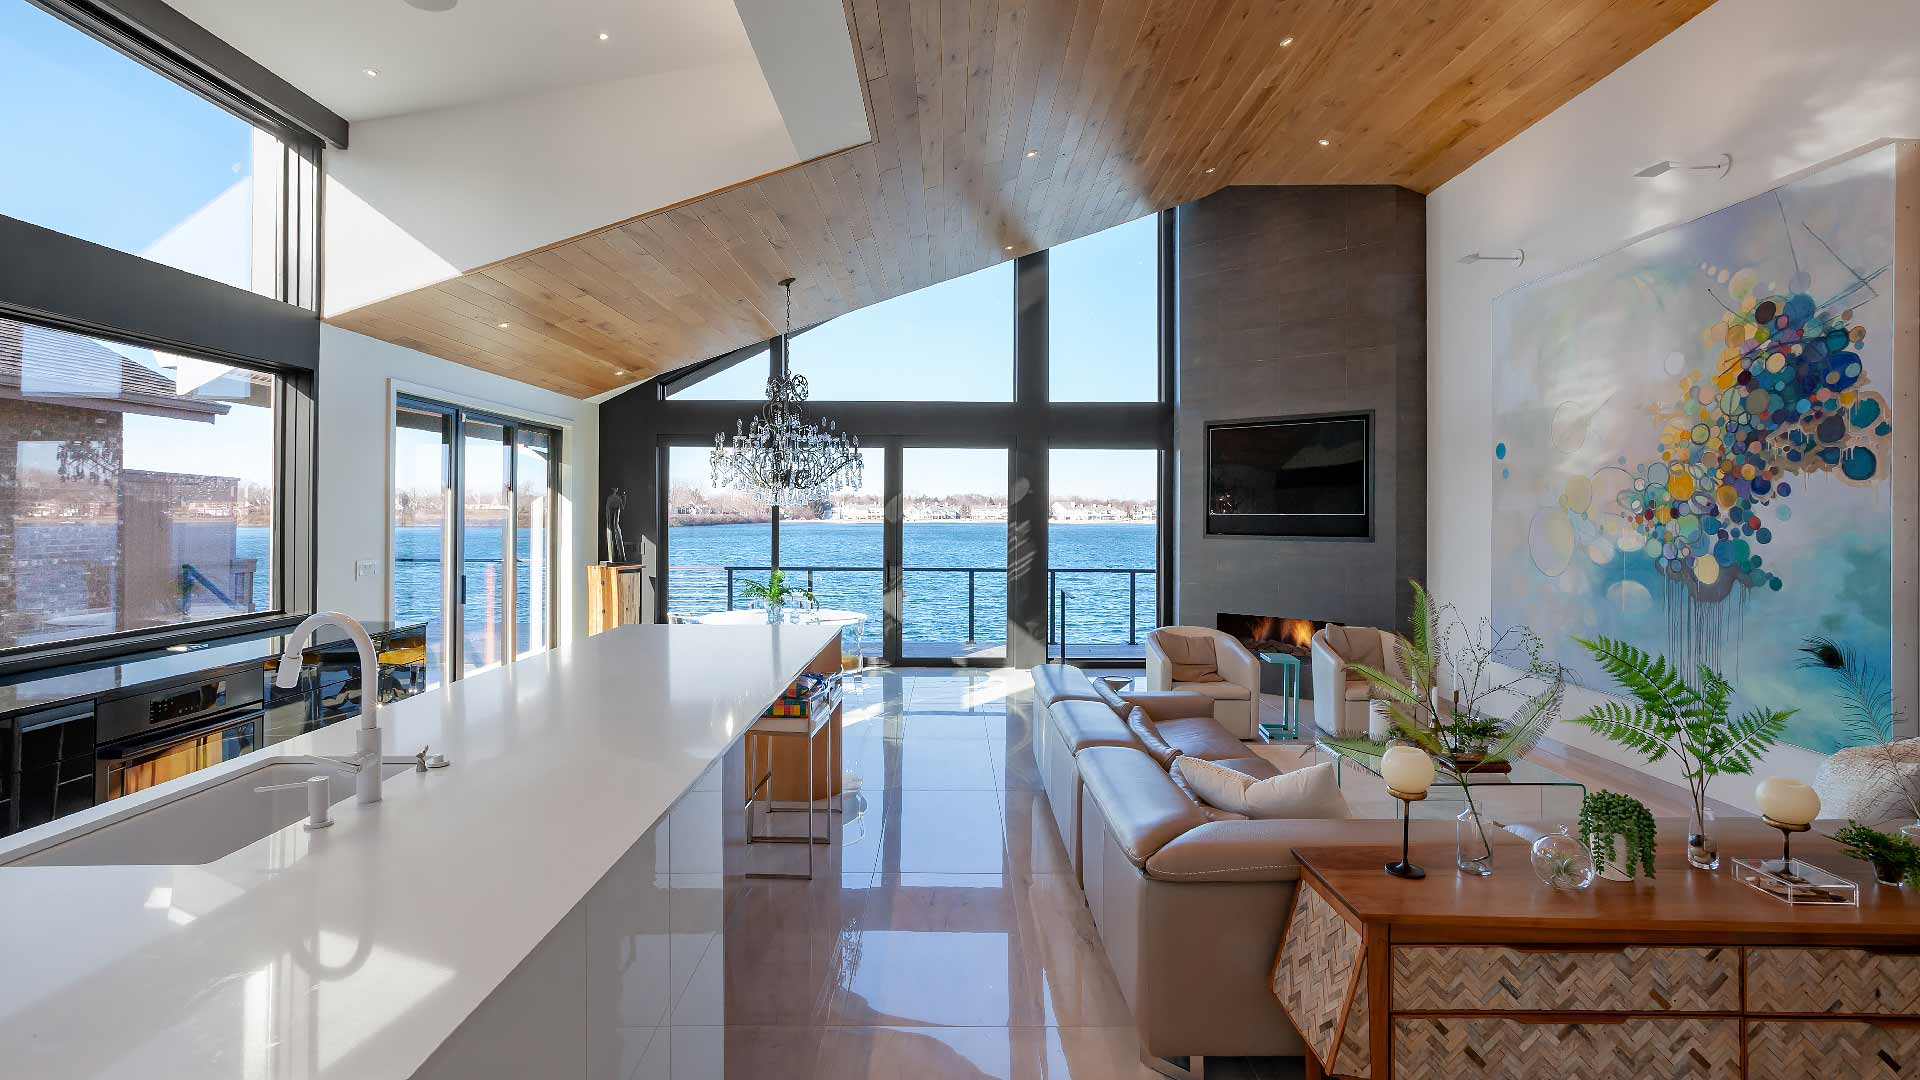 Once you turn the corner upon entry, panoramic lake-side view greets you in the wide-open kitchen, dining, living space - Modern Lakehouse Renovation - Clearwater - HAUS | Architecture For Modern Lifestyles - Christopher Short, Architect - Derek Mills, Project manager - WERK | Building Modern (Construction Manager + Custom Builder)